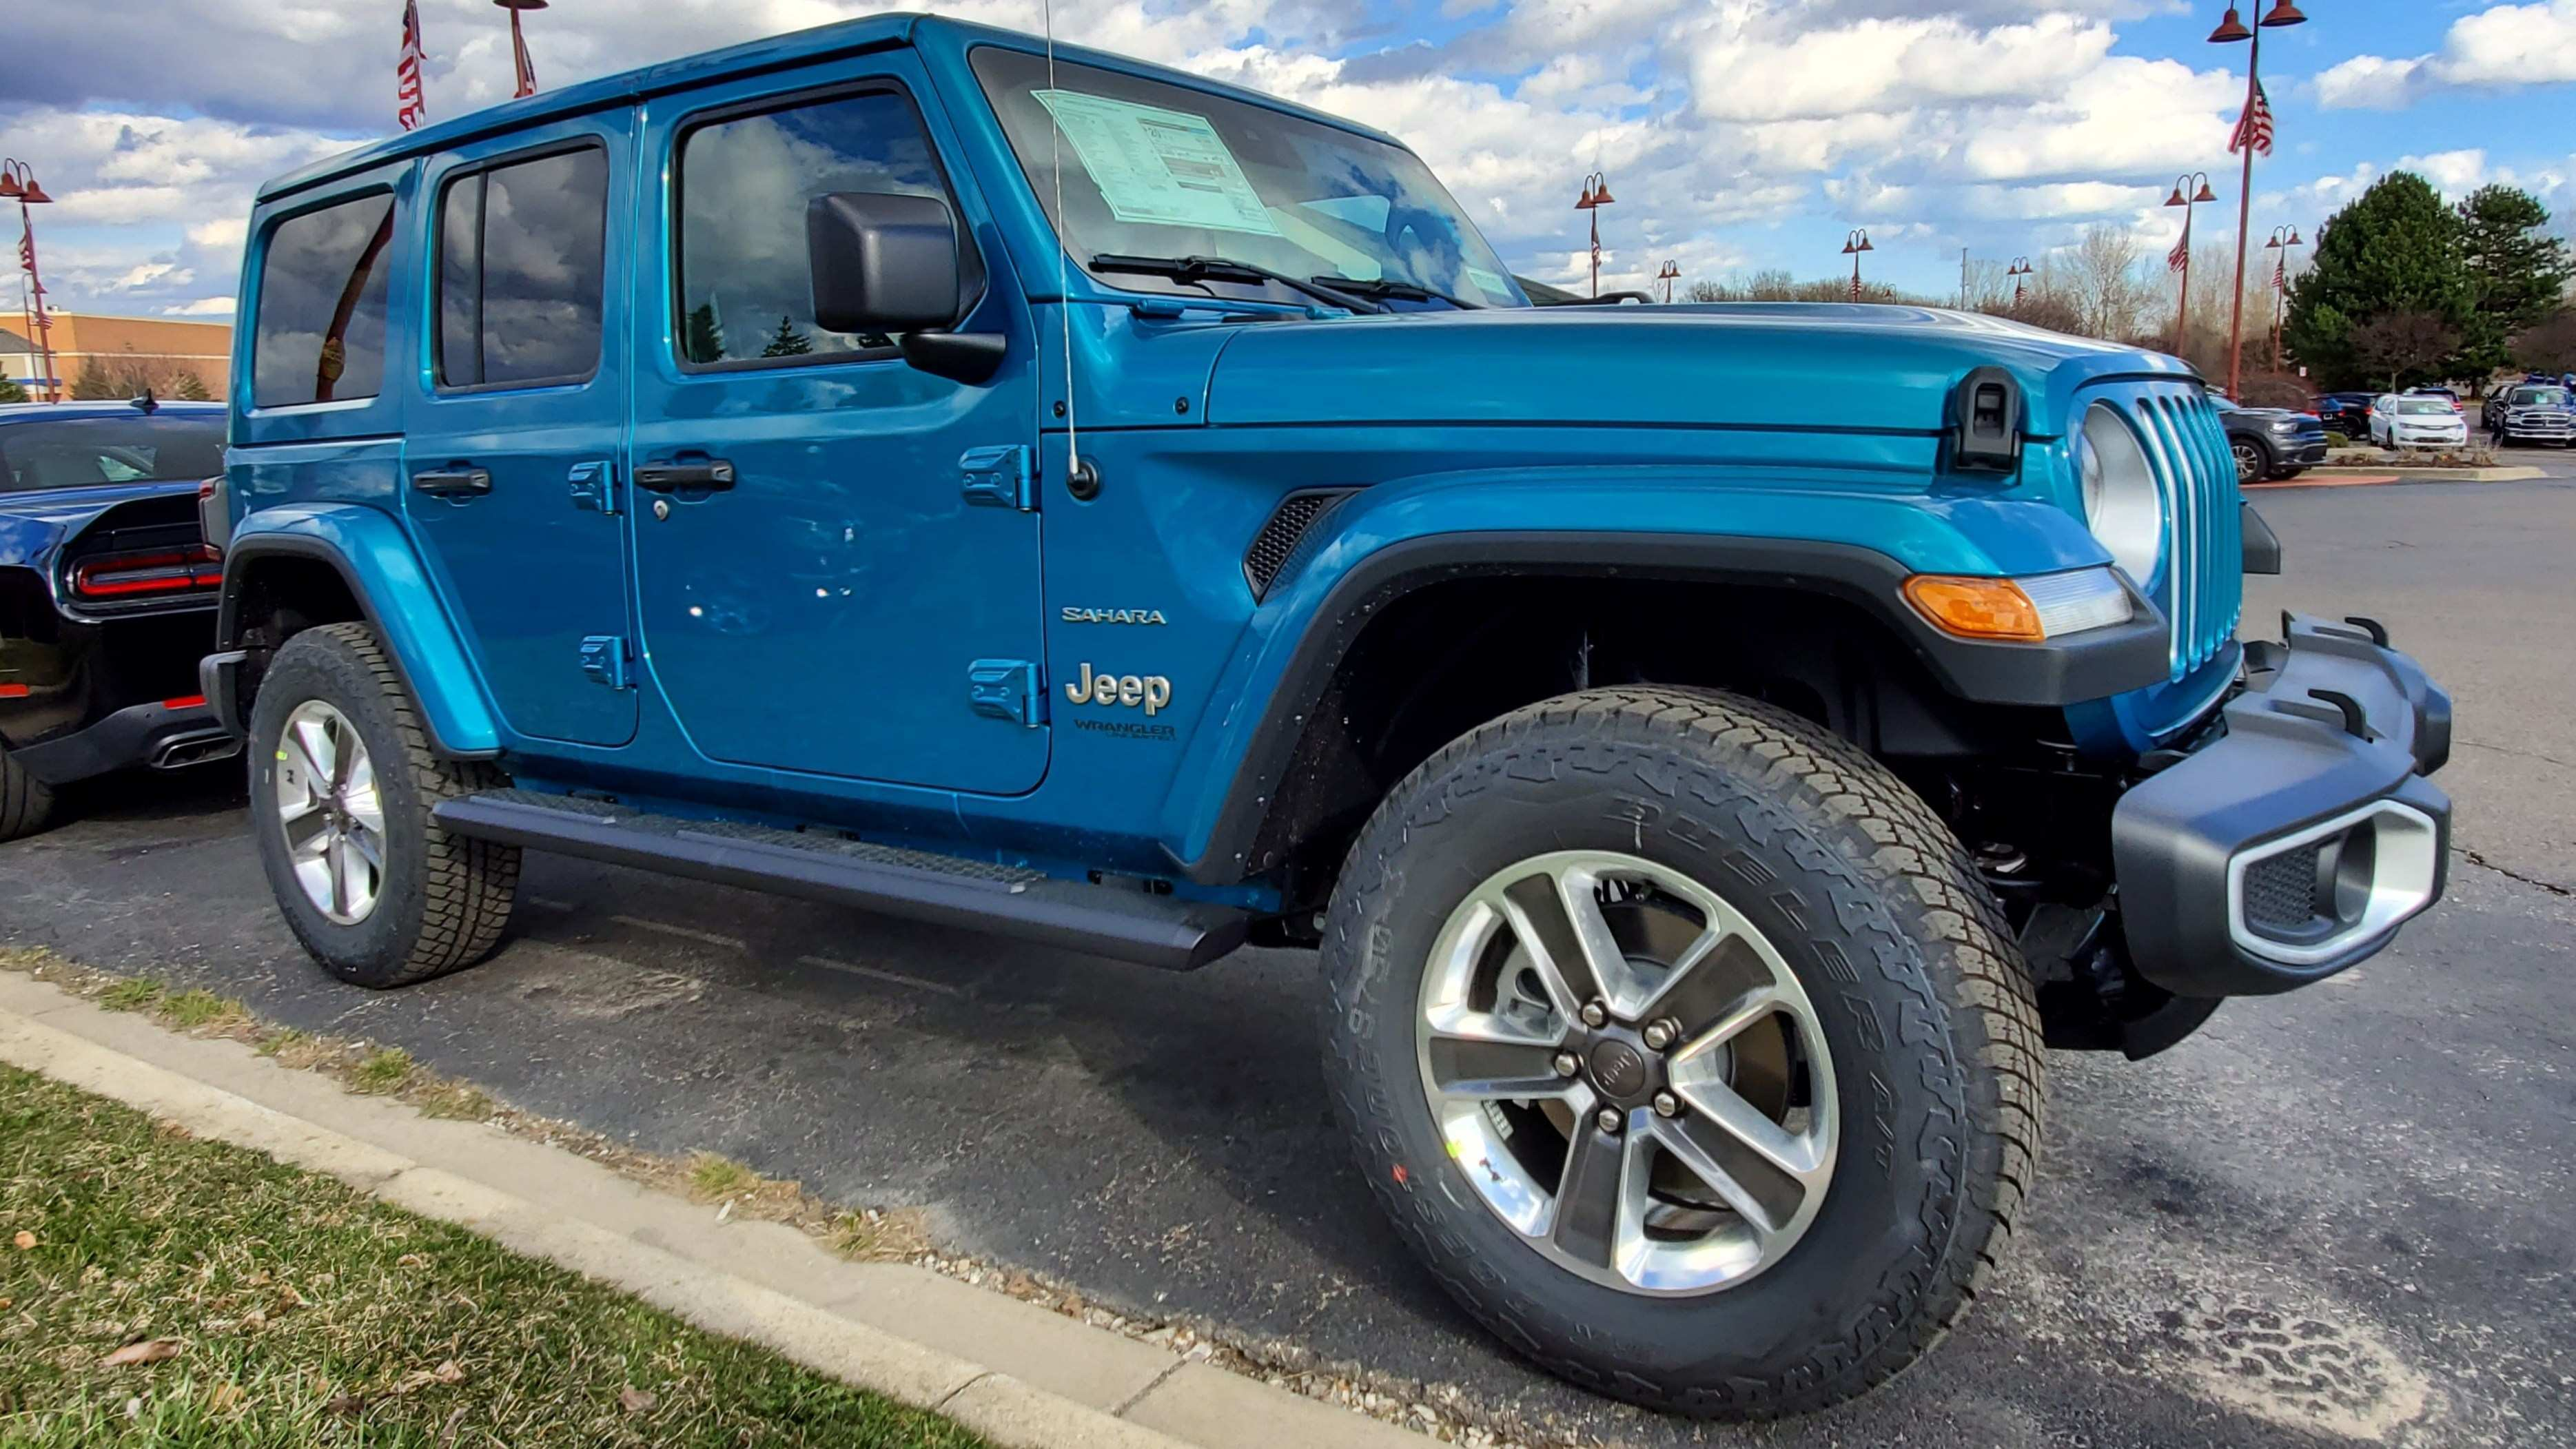 83 All New 2019 Jeep Jl Colors History